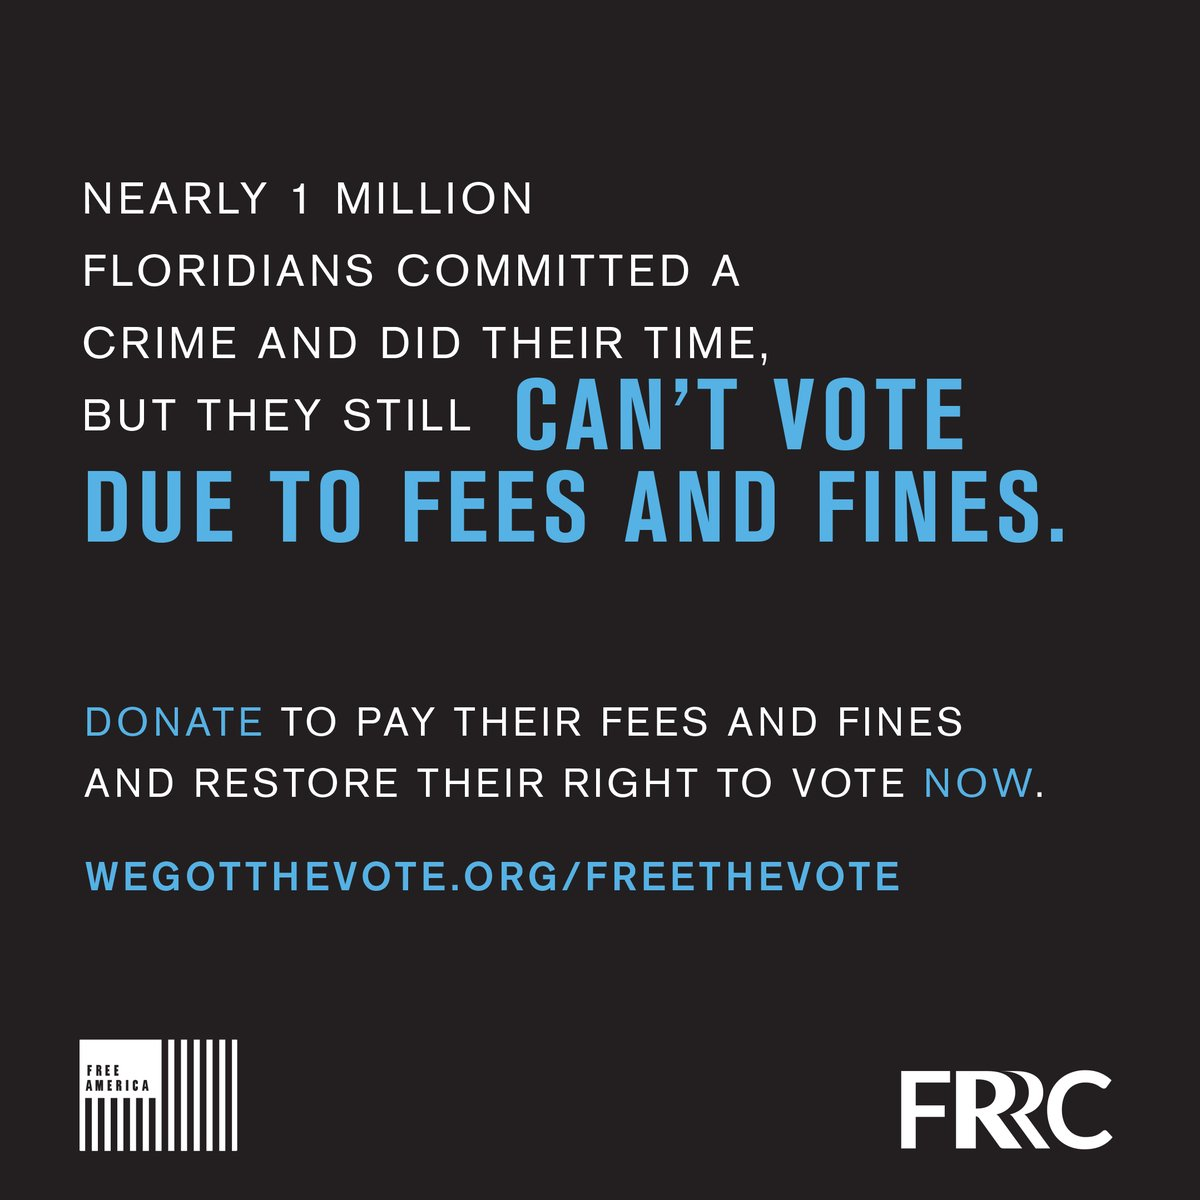 I'm proud to launch #FreeTheVote with @FLRightsRestore & @LetsFreeAmerica. Florida's pay-to-vote system stops formerly convicted individuals with fines & fees from voting. Donate what you can so returning citizens can register by the 10/5 deadline: https://t.co/xcIbqlt7s1 https://t.co/vJlhDoABHu